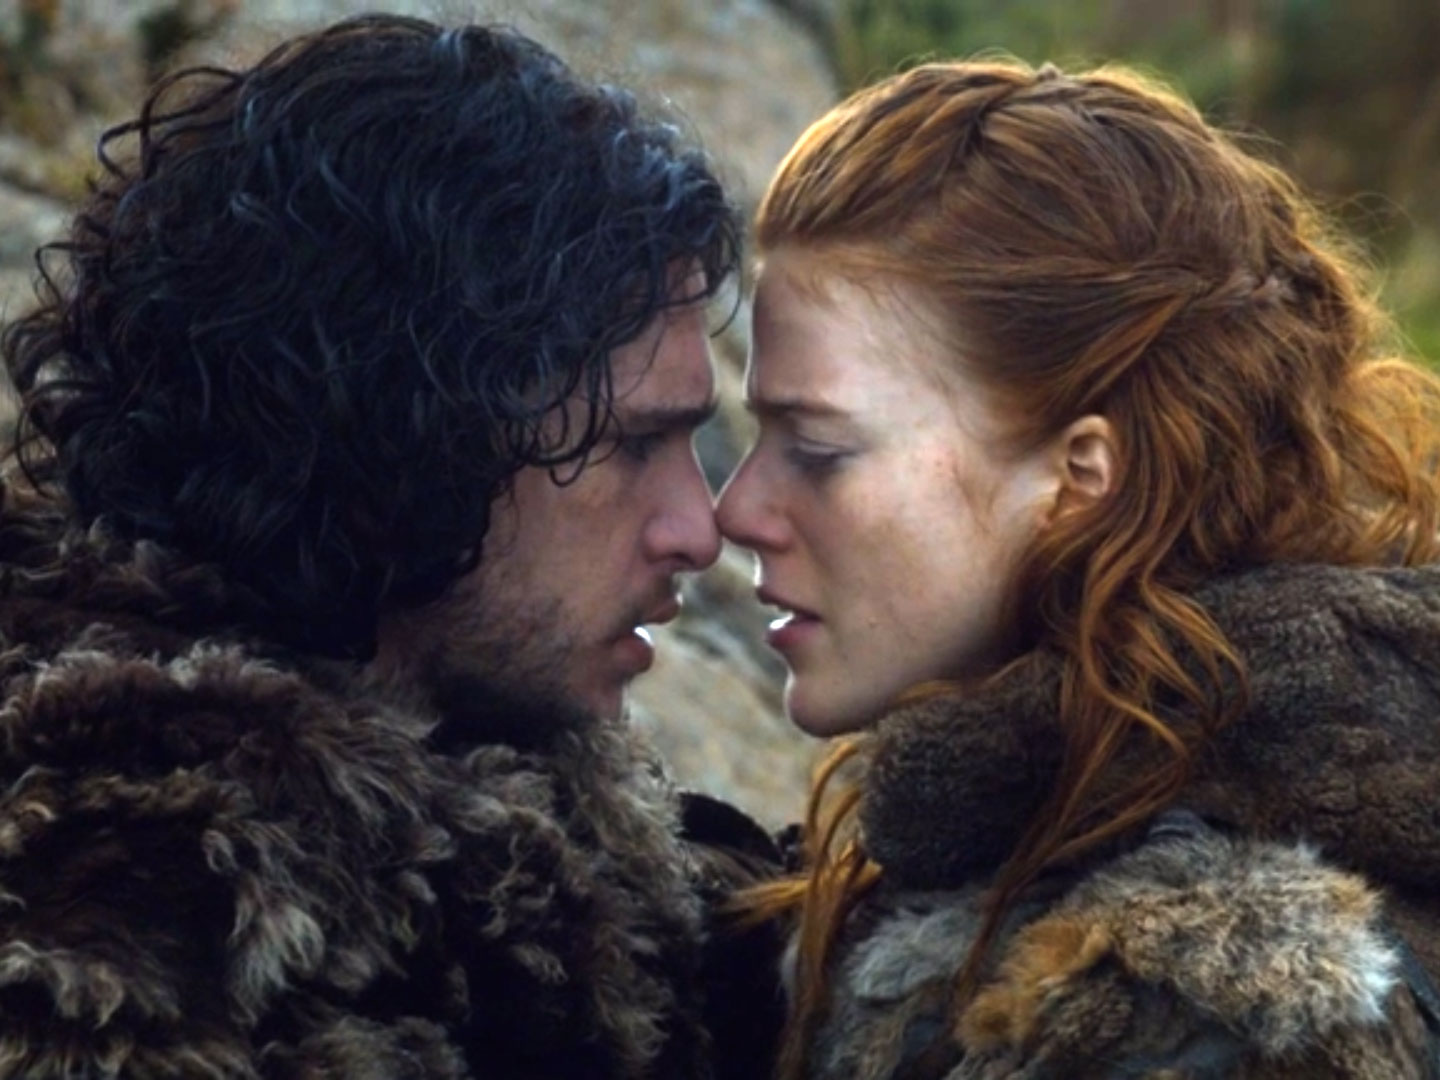 TV Couples Who Dated IRL Jon and Snow Ygritte Game of Thrones - Kit Harington and Rose Leslie starred together in Game of Thrones from 2012 until her character's untimely death in 2014; the two formed a relationship while filming and tied the knot in 2018.